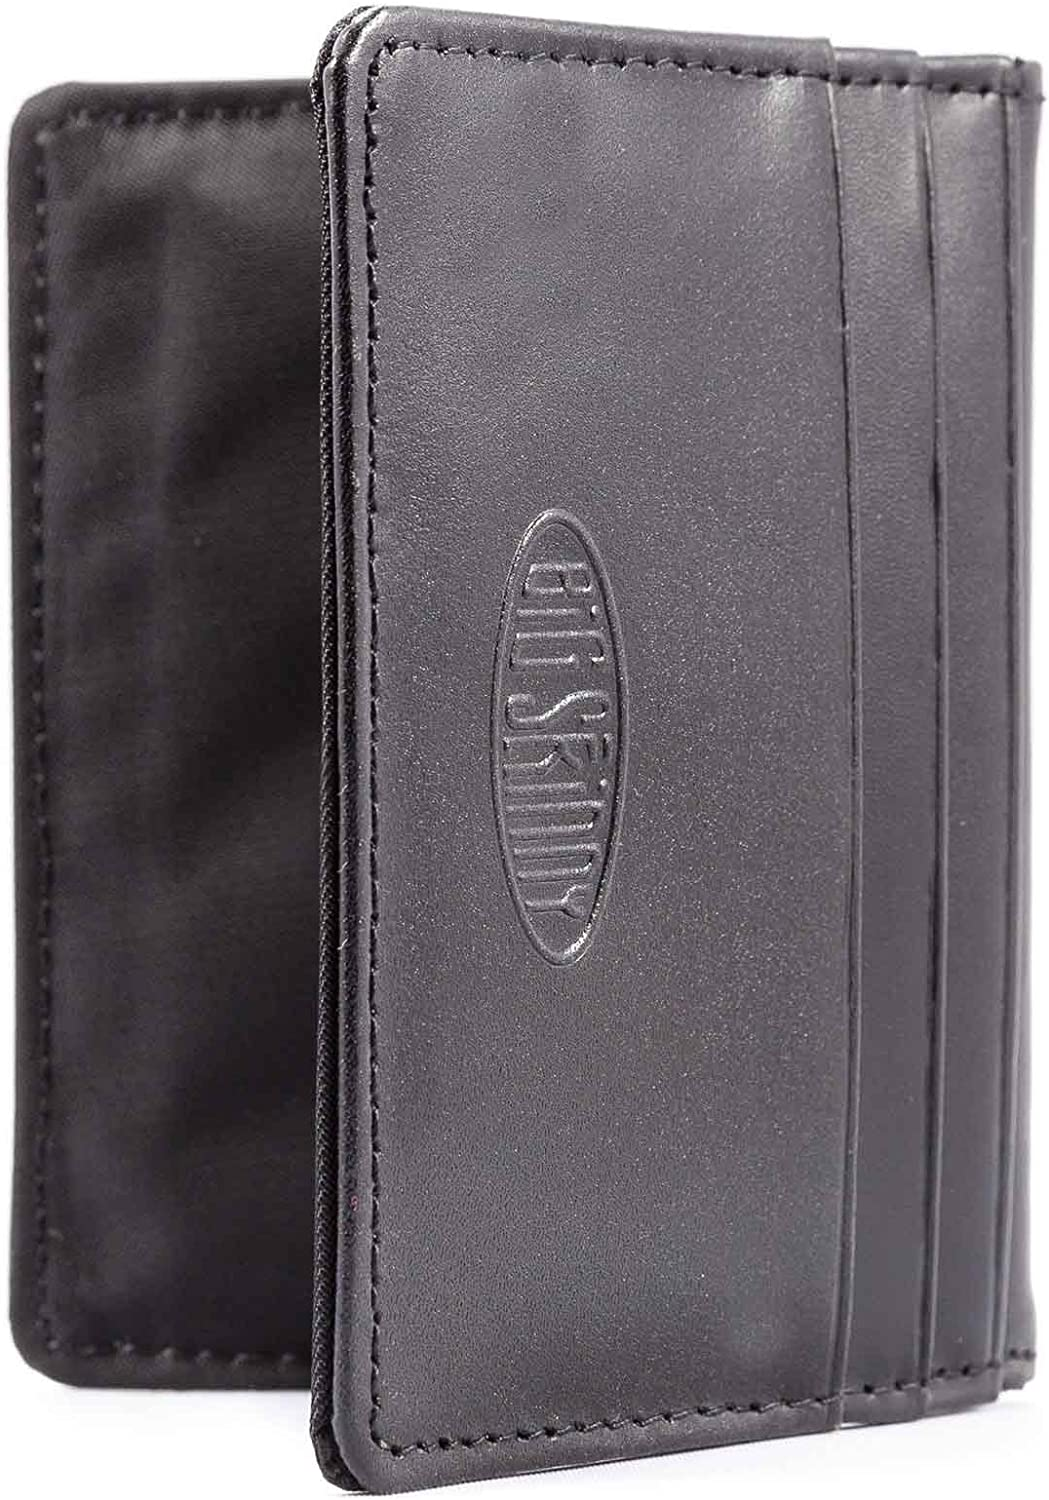 Big Skinny New Yorker Leather ID Slim Wallet, Holds Up to 24 Cards